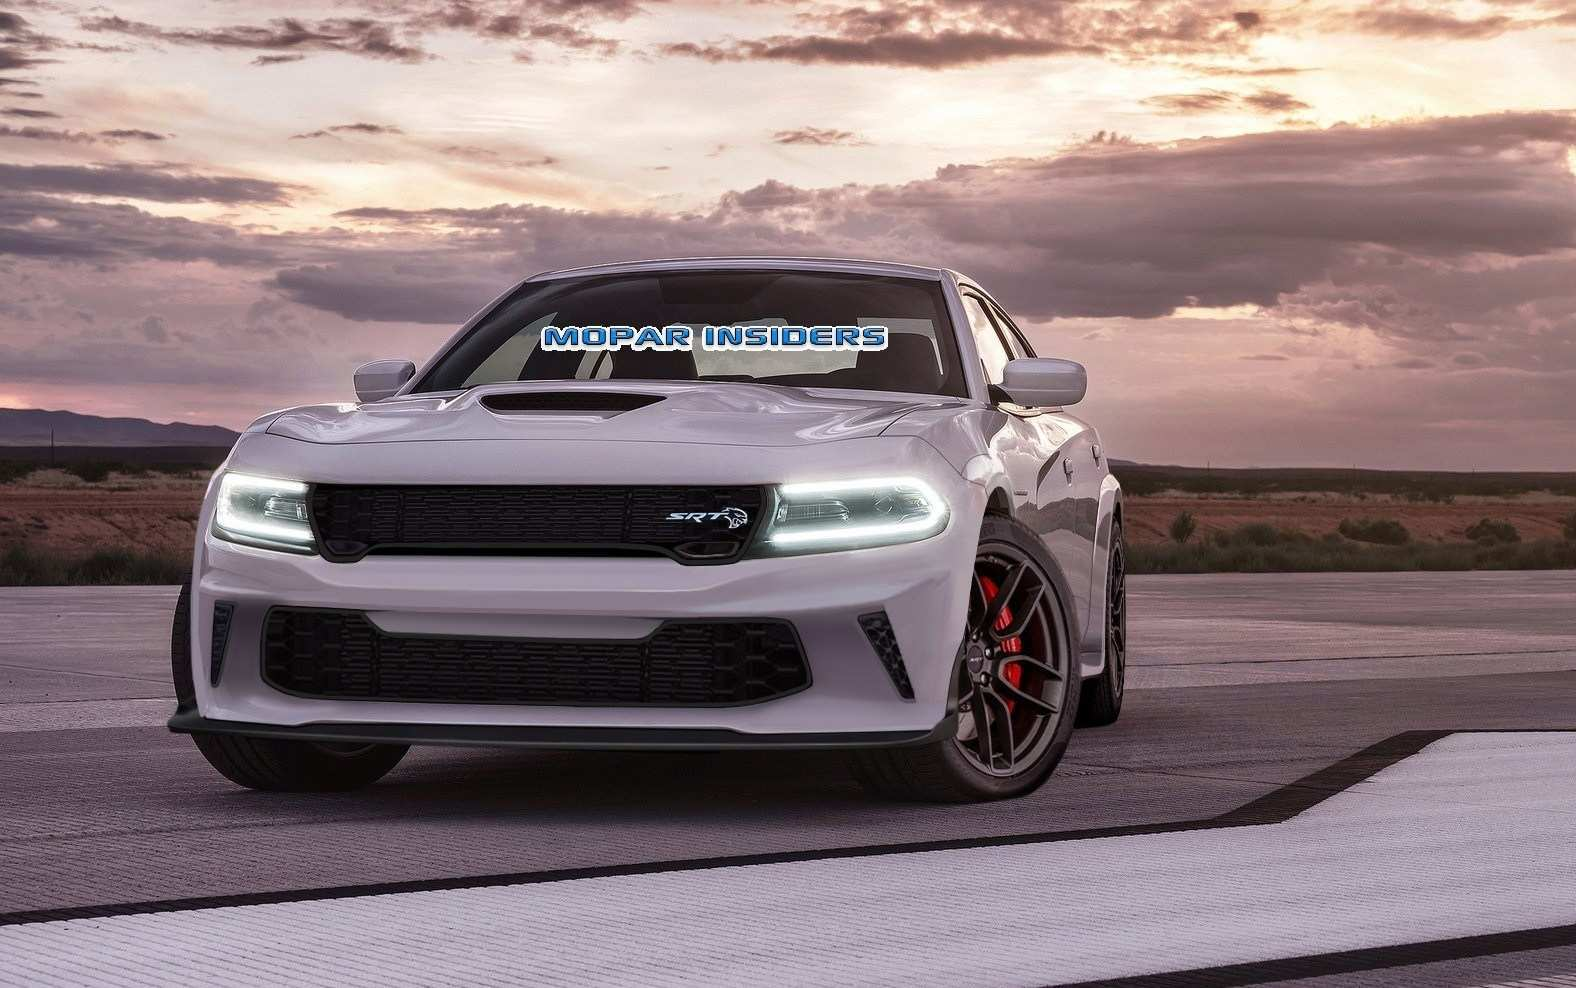 41 The Best 2020 Dodge Charger Awd Release Date